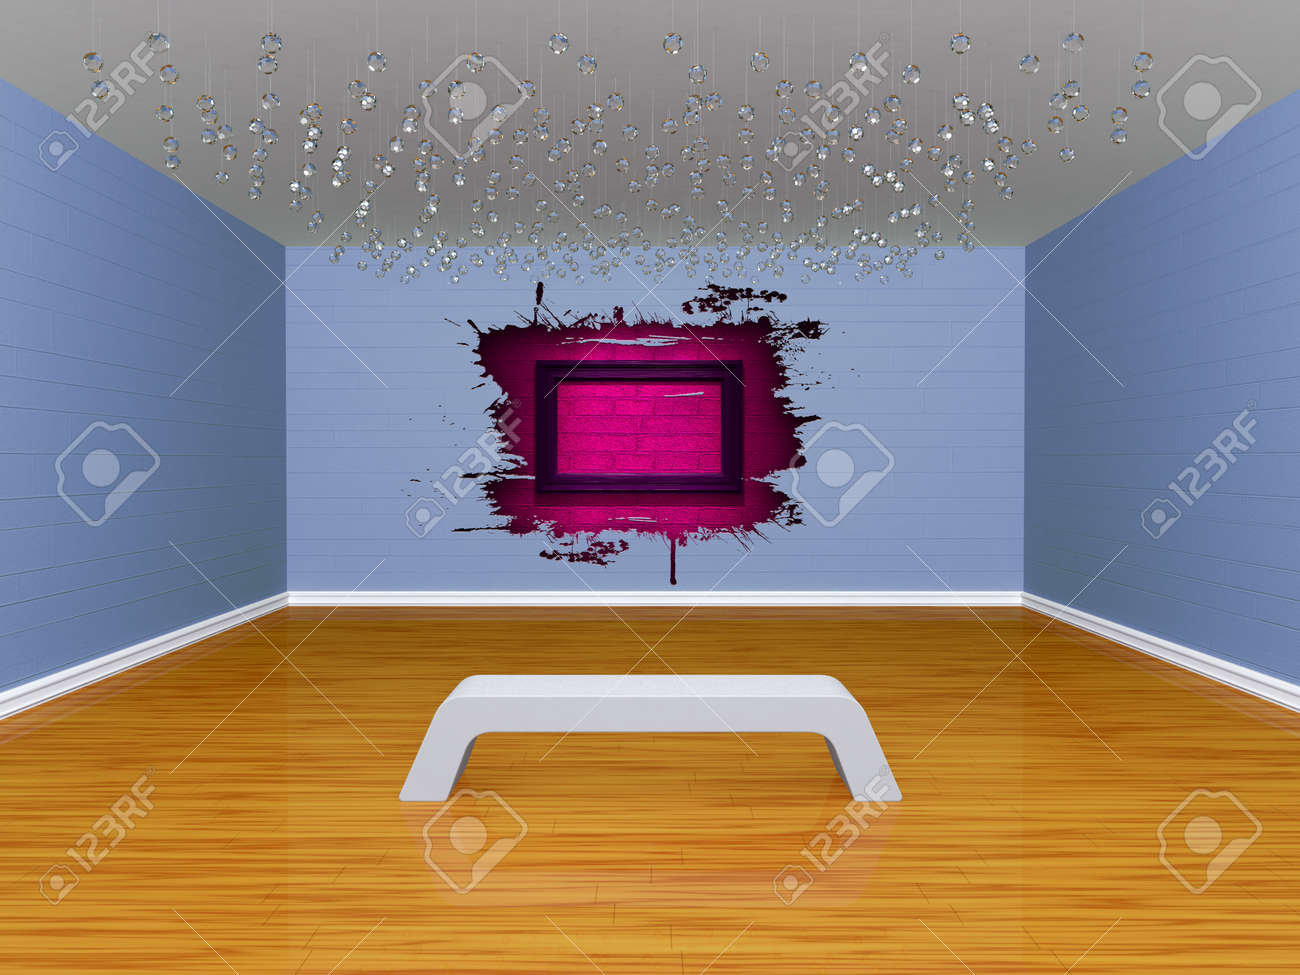 Gallery's hall with bench Stock Photo - 13172021